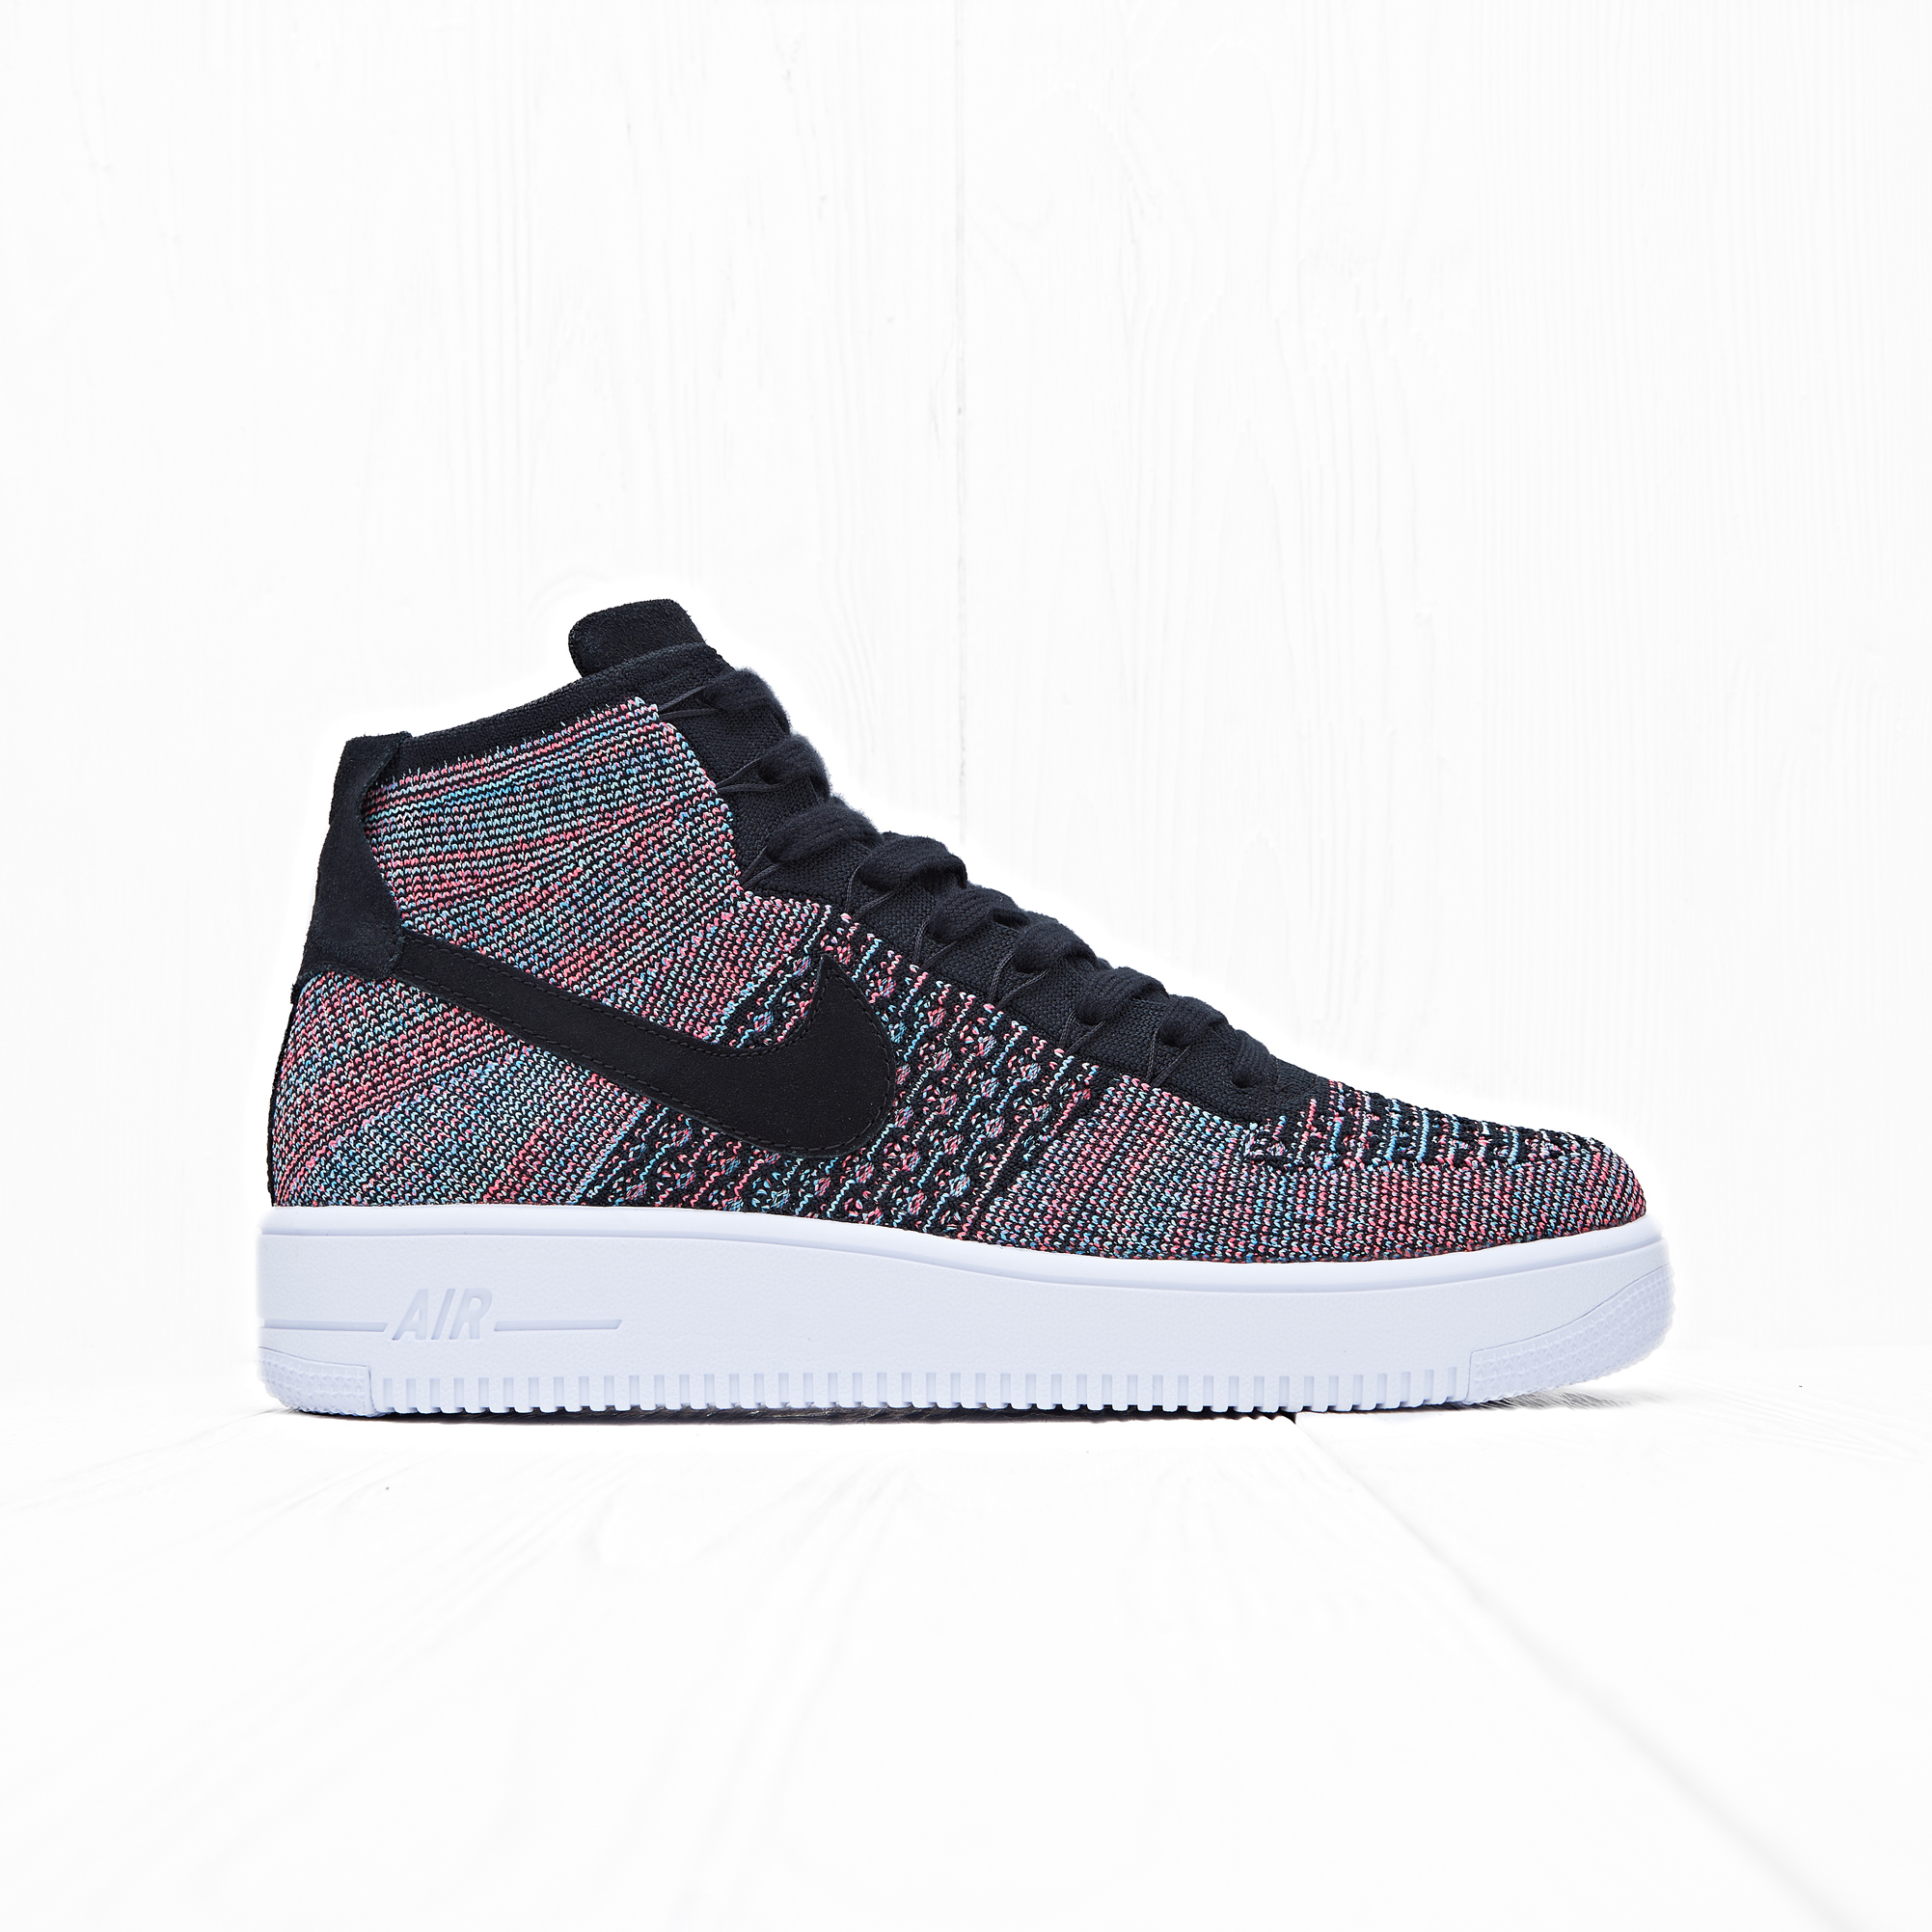 Кроссовки Nike AIR FORCE 1 ULTRA FLYKNIT MID Black/Pink-Blue